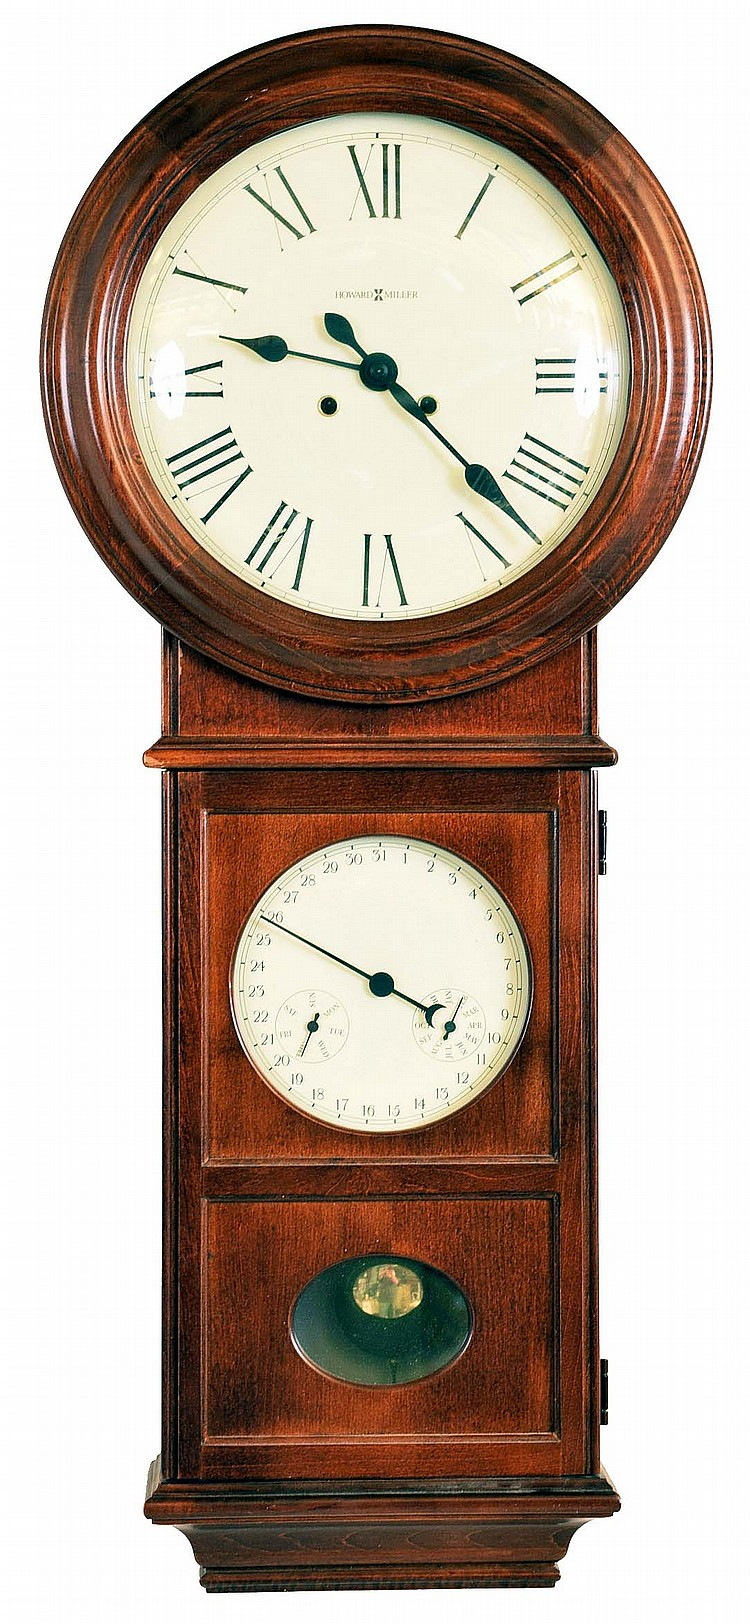 Clocks- 5 (Five) 8 day wall clocks: Russian submarine time only marine clock; Howard Miller and Seth Thomas large oak gallery clocks with two quartz movements each; Seth Thomas oak Regulator No.2, reissue No. 351 of 4,000; Howard Miller 620- 248 time